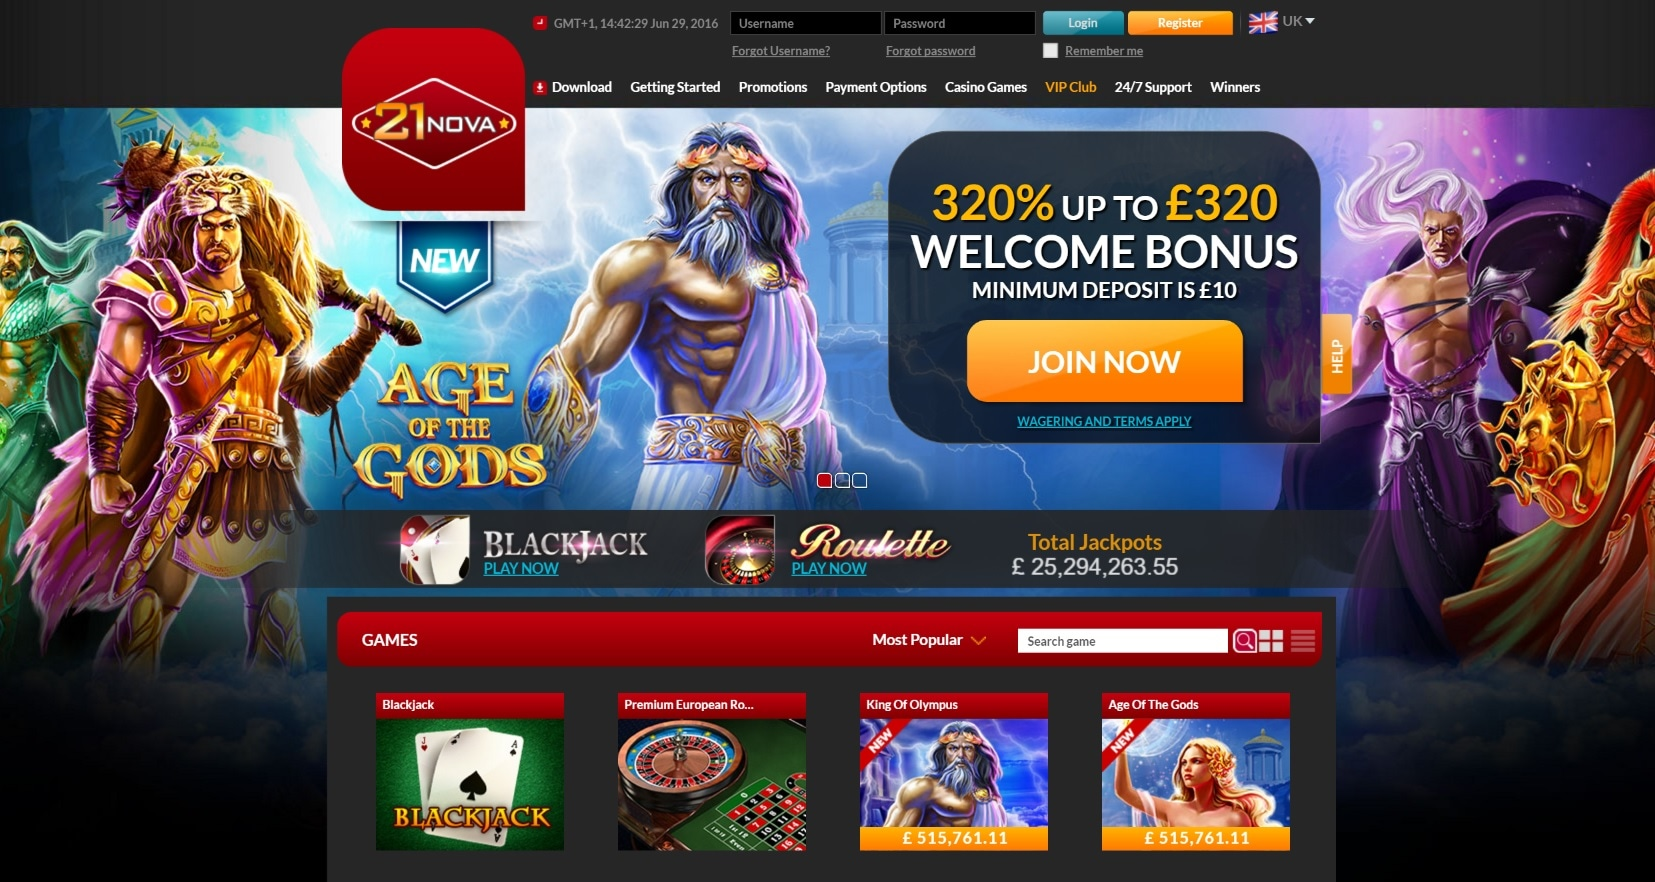 online casino gambling site casino holidays